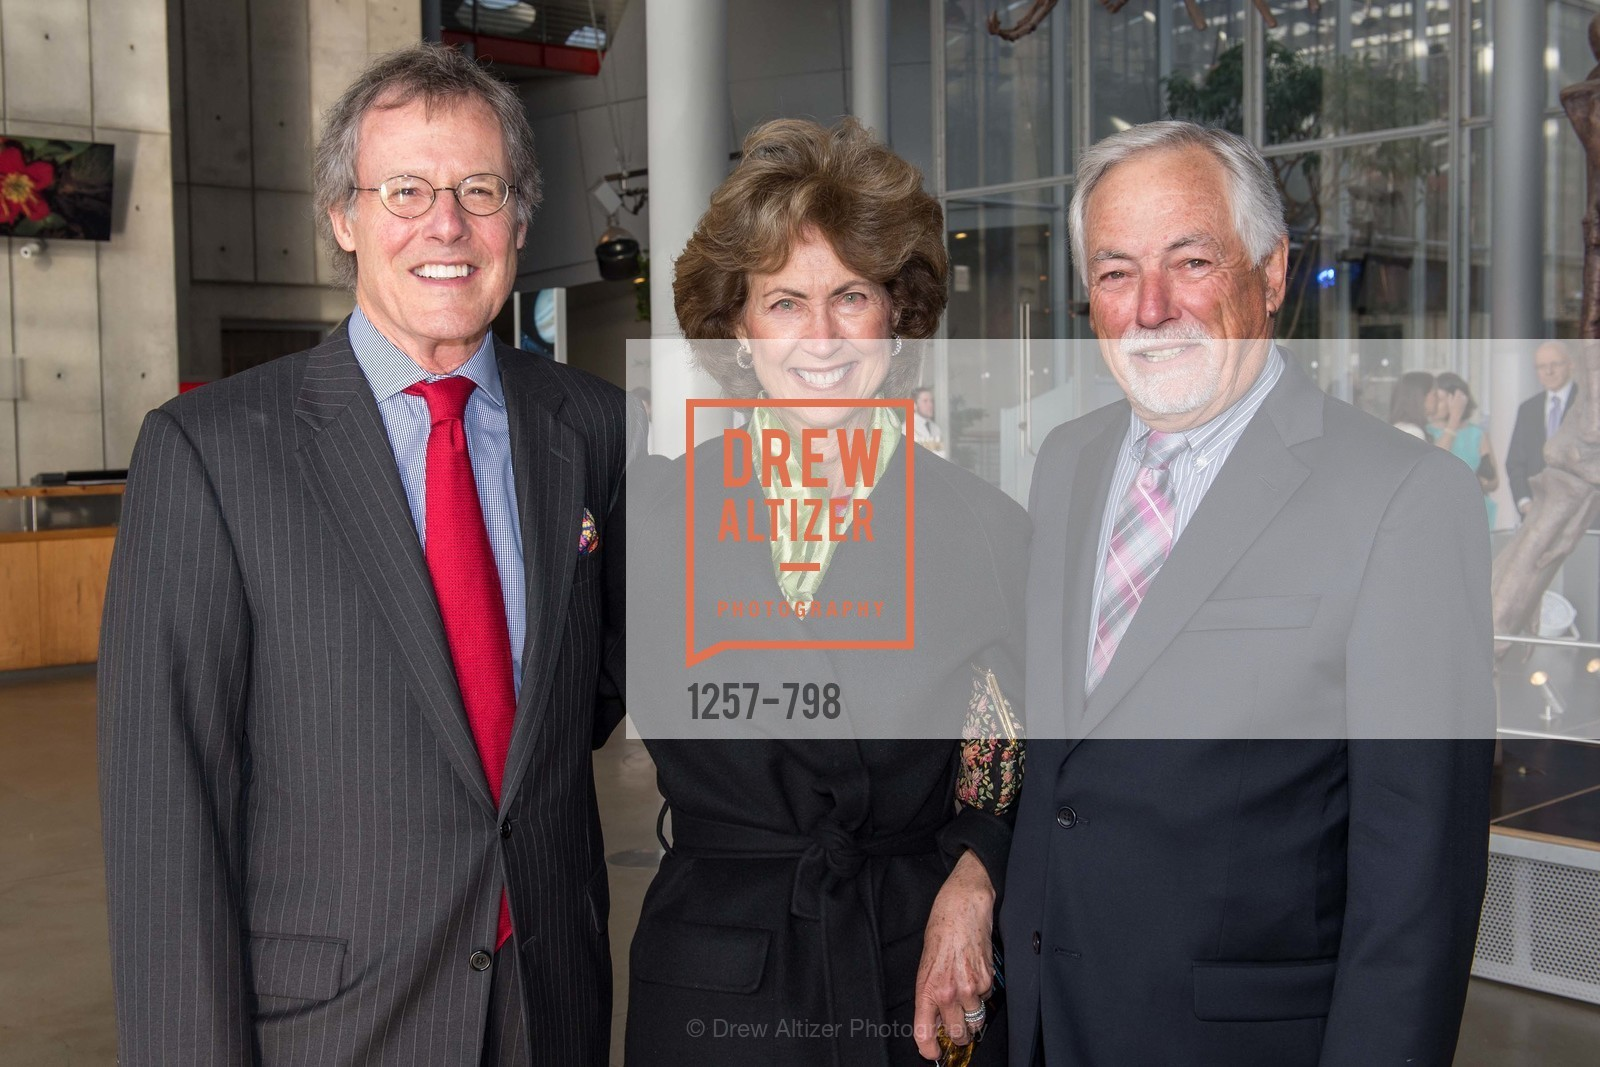 Mark Perry, Mauree Jane Perry, Mark Buell, CALIFORNIA ACADEMY OF SCIENCES - Big Bang Gala 2015, US, April 23rd, 2015,Drew Altizer, Drew Altizer Photography, full-service agency, private events, San Francisco photographer, photographer california